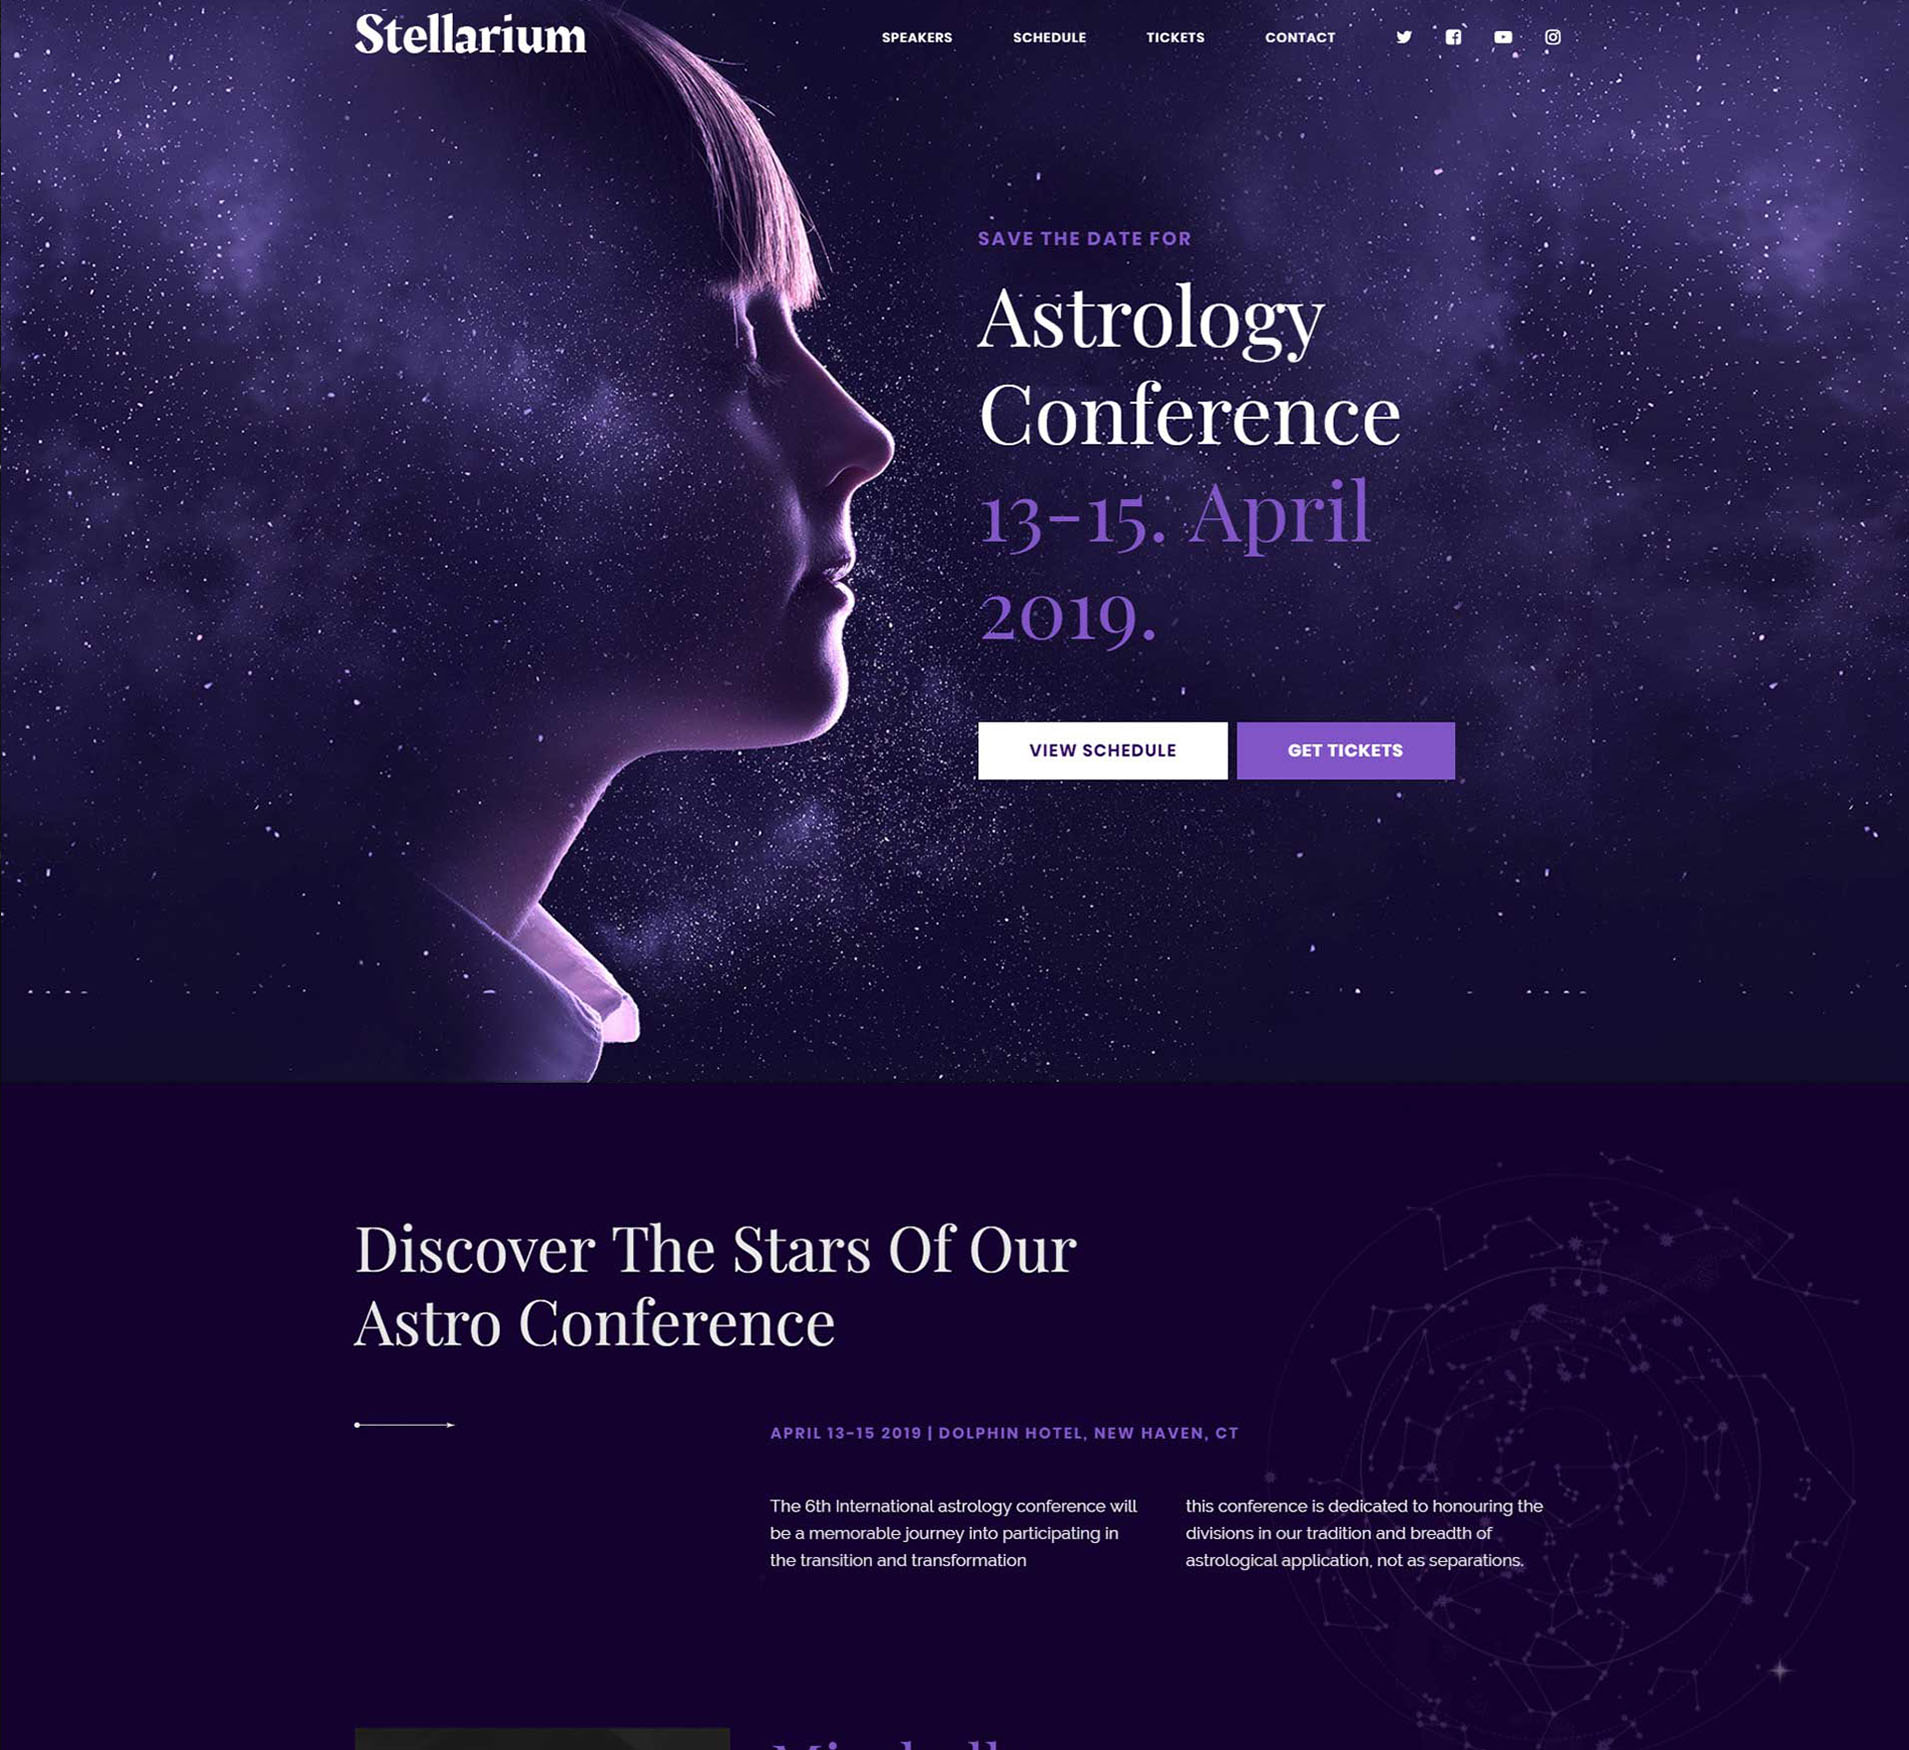 http://stellarium.bold-themes.com/wp-content/uploads/2018/07/highlight_conference_demo.jpg